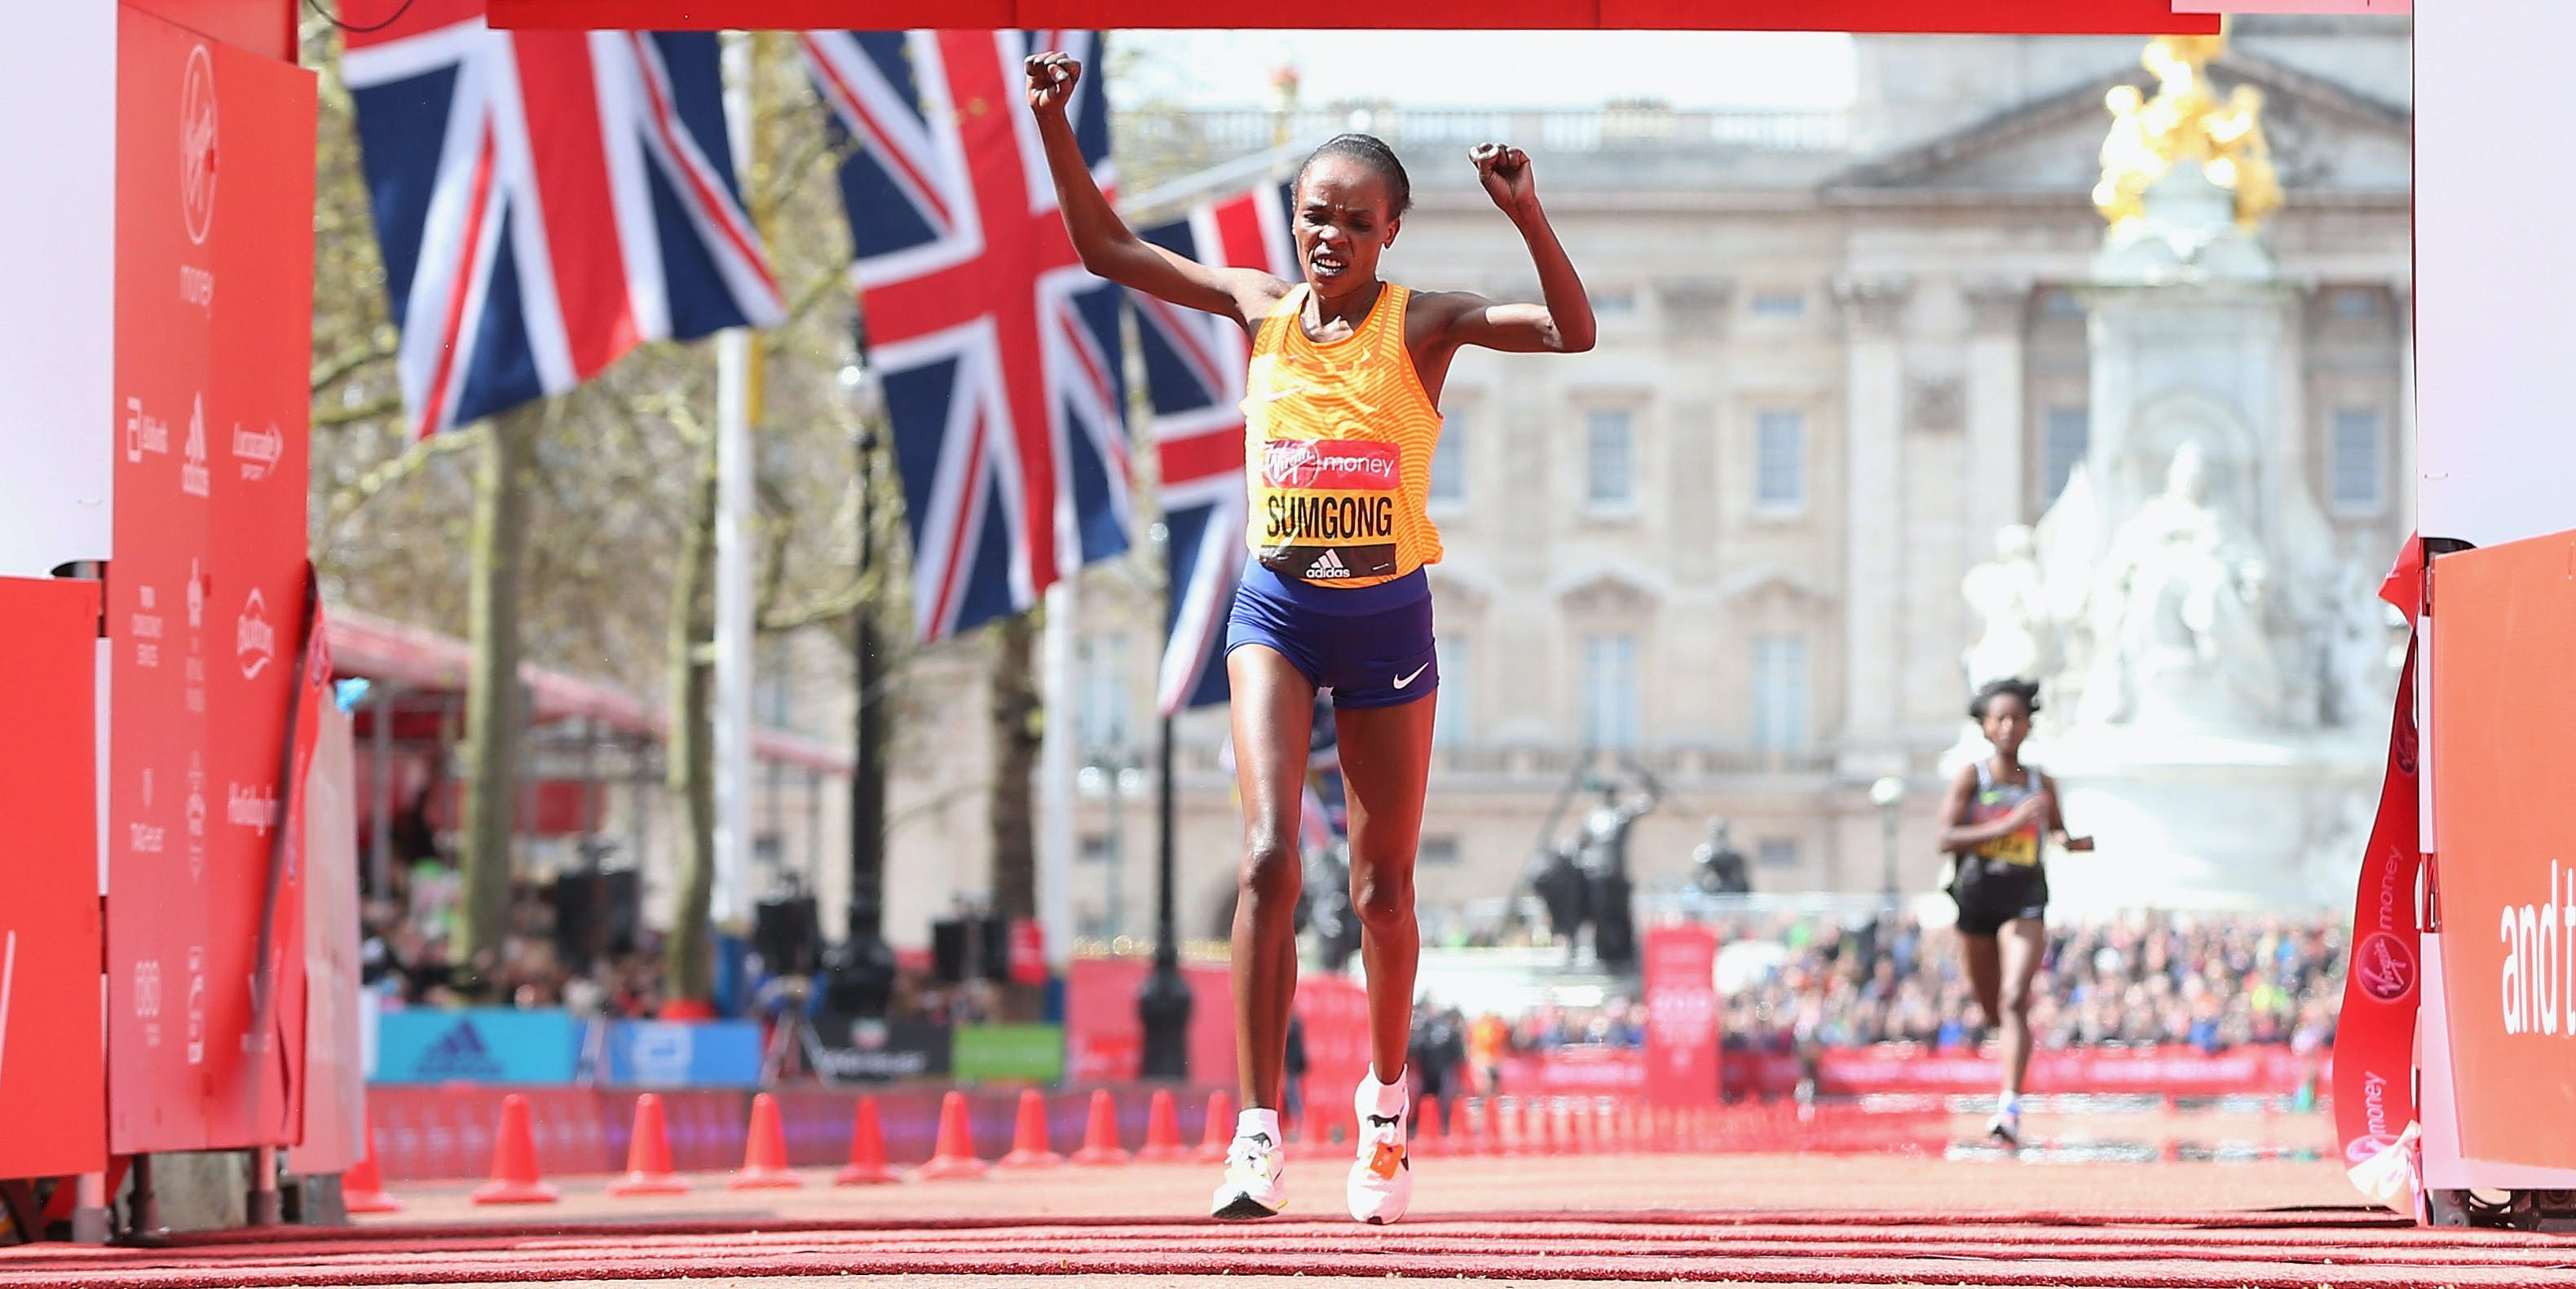 Jemima Sumgong of Kenya wins the Elite womens race during the Virgin Money Giving London Marathon at the finish on The Mall on April 24, 2016 in London, England.